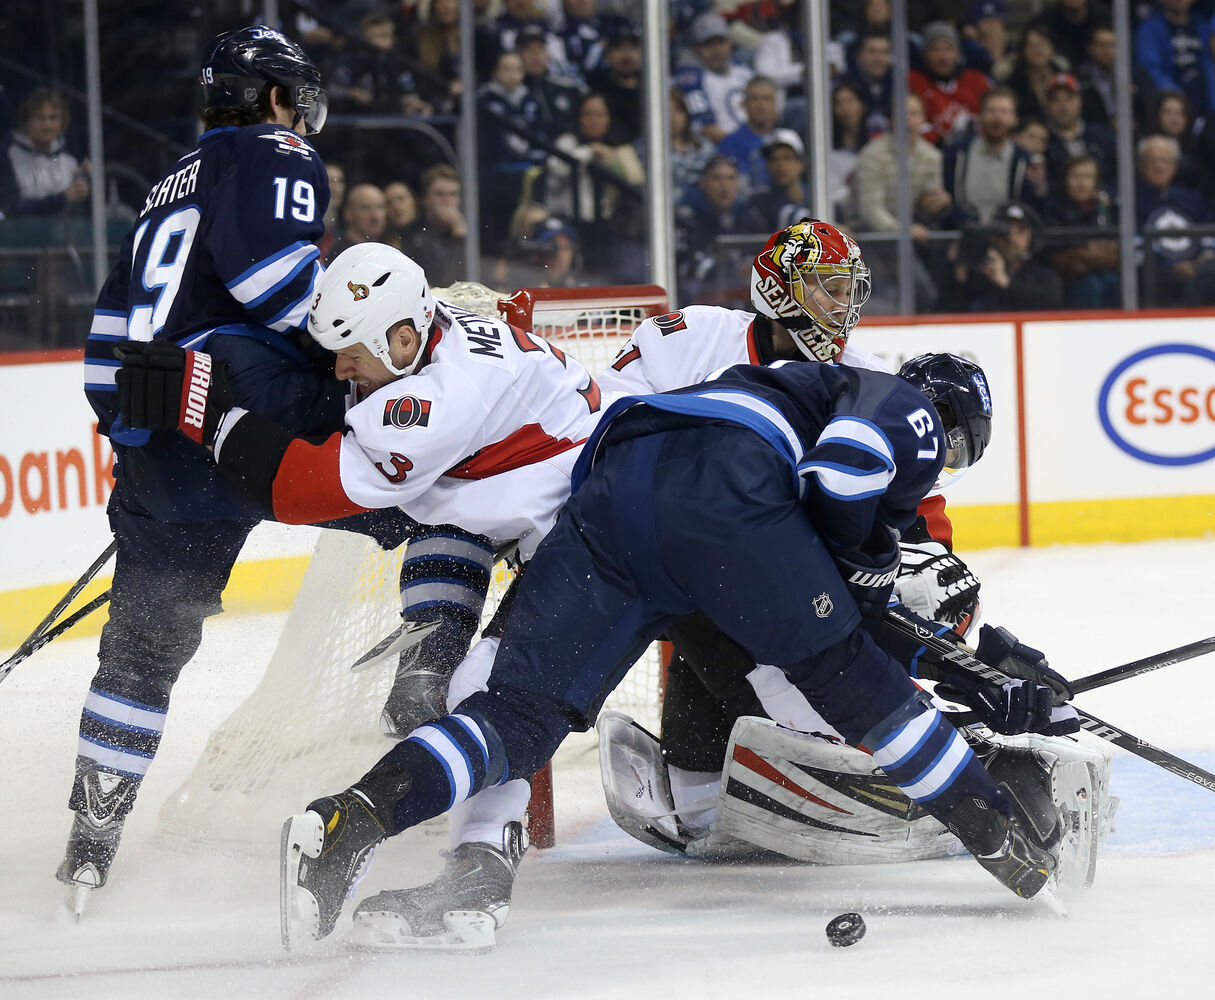 Winnipeg Jets' Jim Slater (19) and Michael Frolik (67) battle with Ottawa Senators' Marc Methot (3) in front of goaltender Craig Anderson (41) during second period NHL action.  (TREVOR HAGAN / WINNIPEG FREE PRESS)